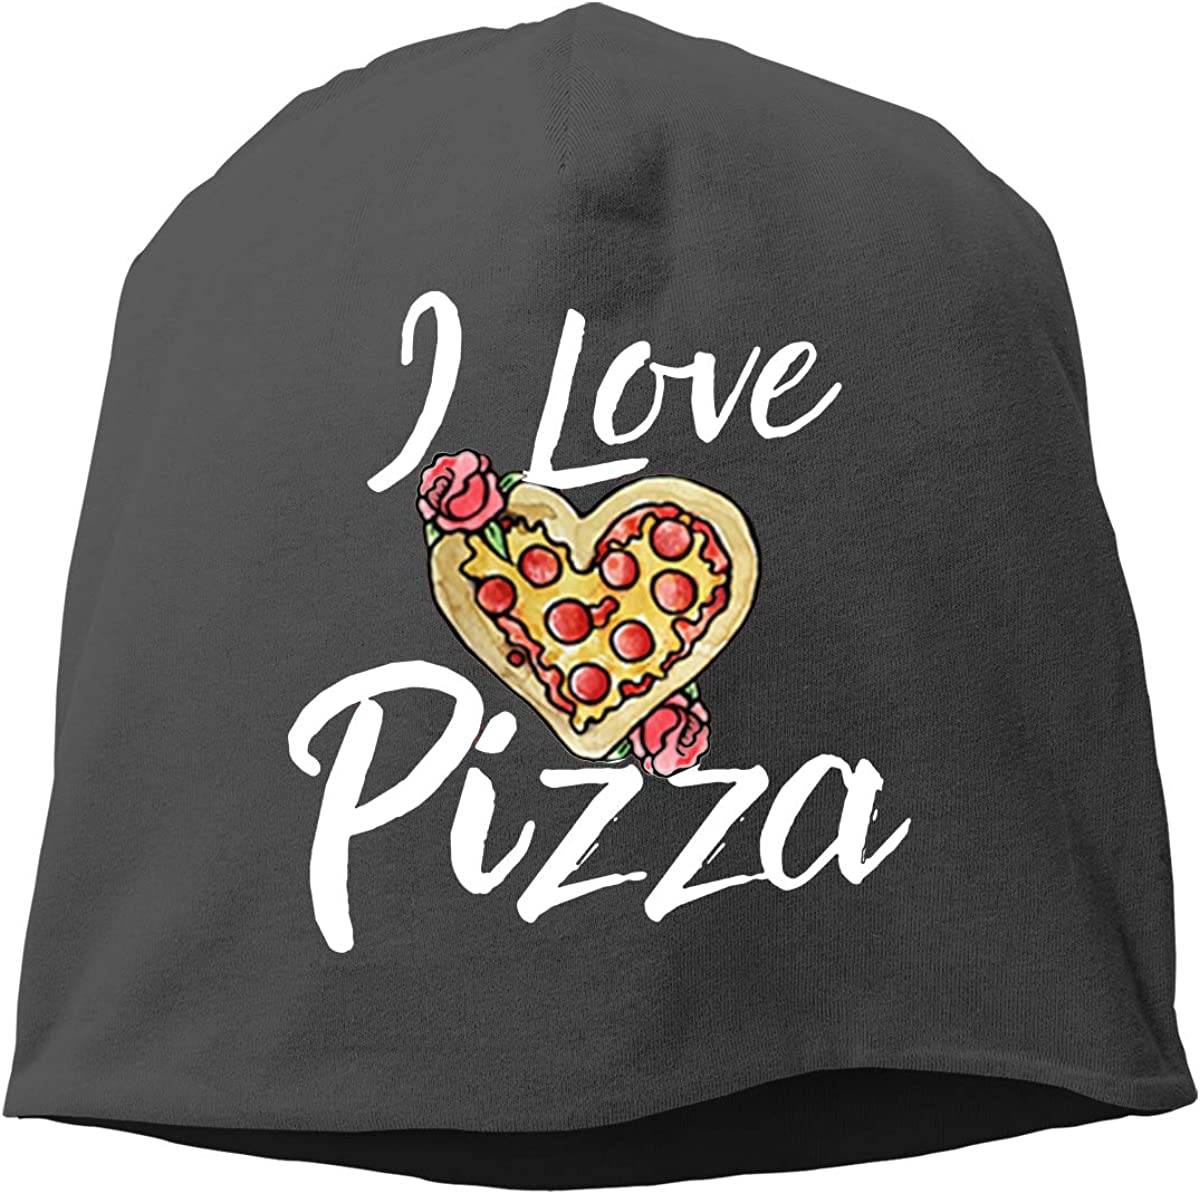 I Love Pizza Unisex Knitted Hat Beanie Hat Warm Hats Skull Cap